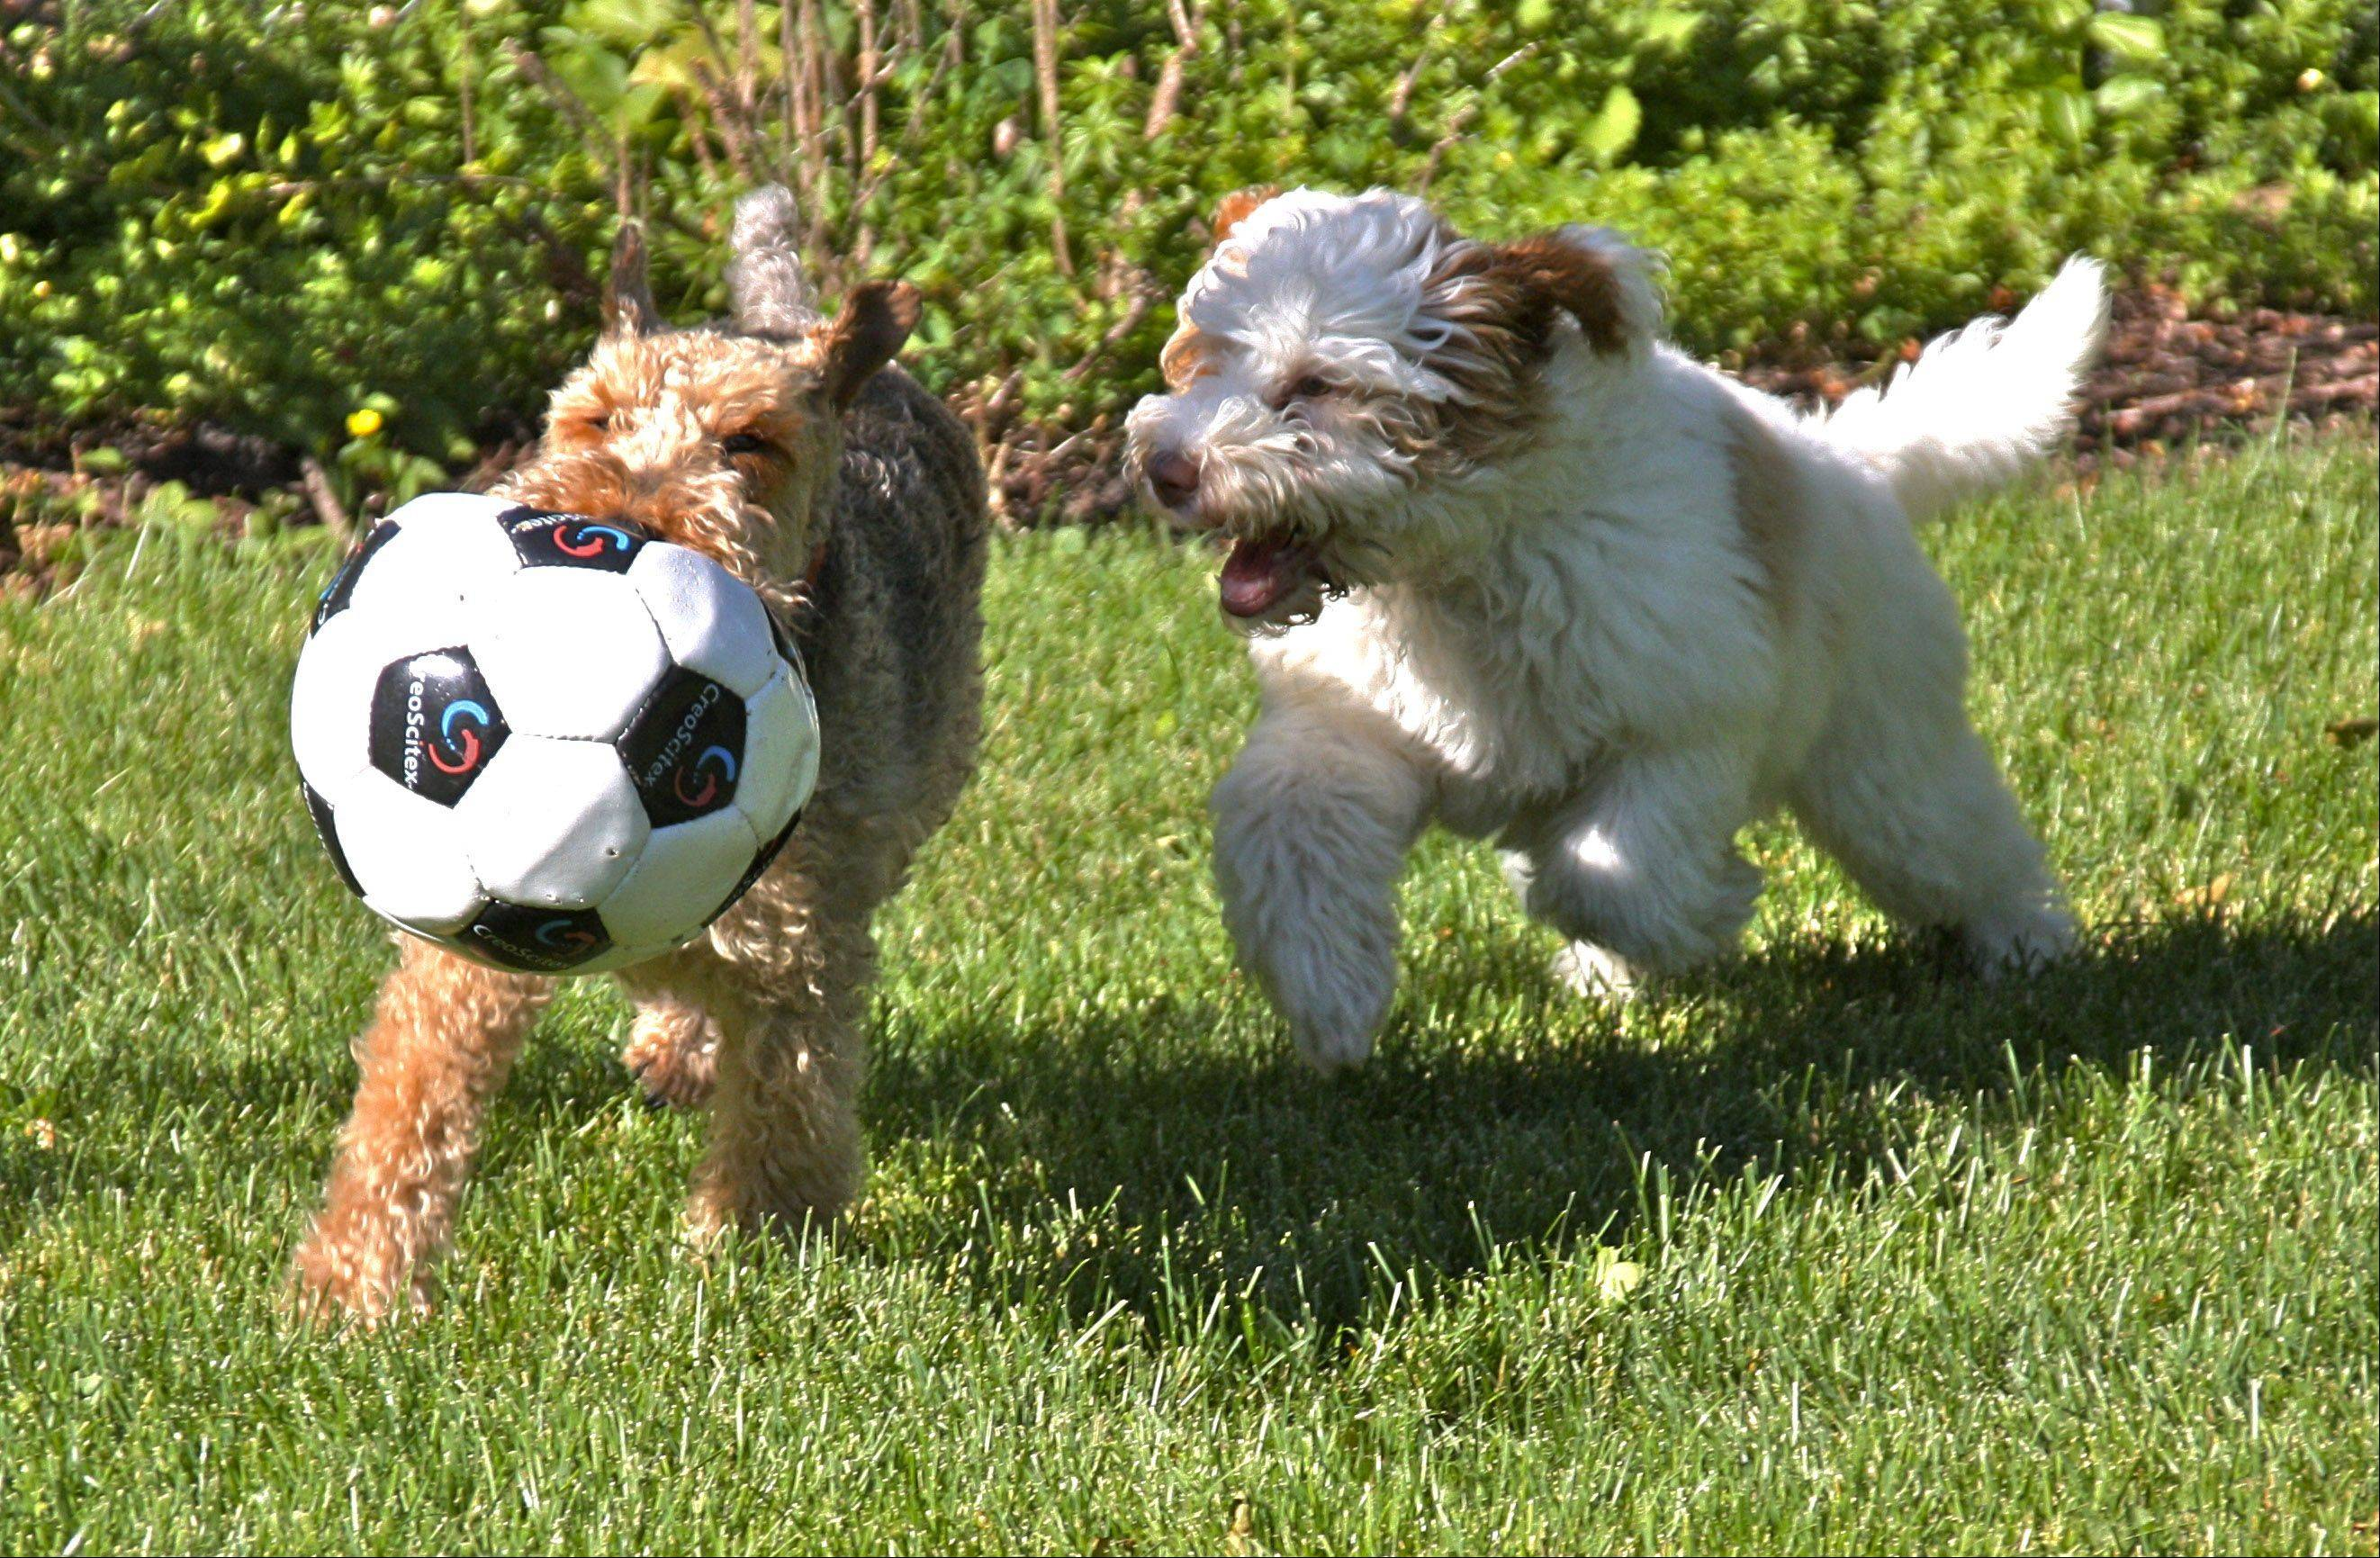 Winston, a Welsh terrier, and Jasper, a Labradoodle puppy, learn how to play soccer in Arlington Heights. The rule says no hands they didn't say anything about mouths.